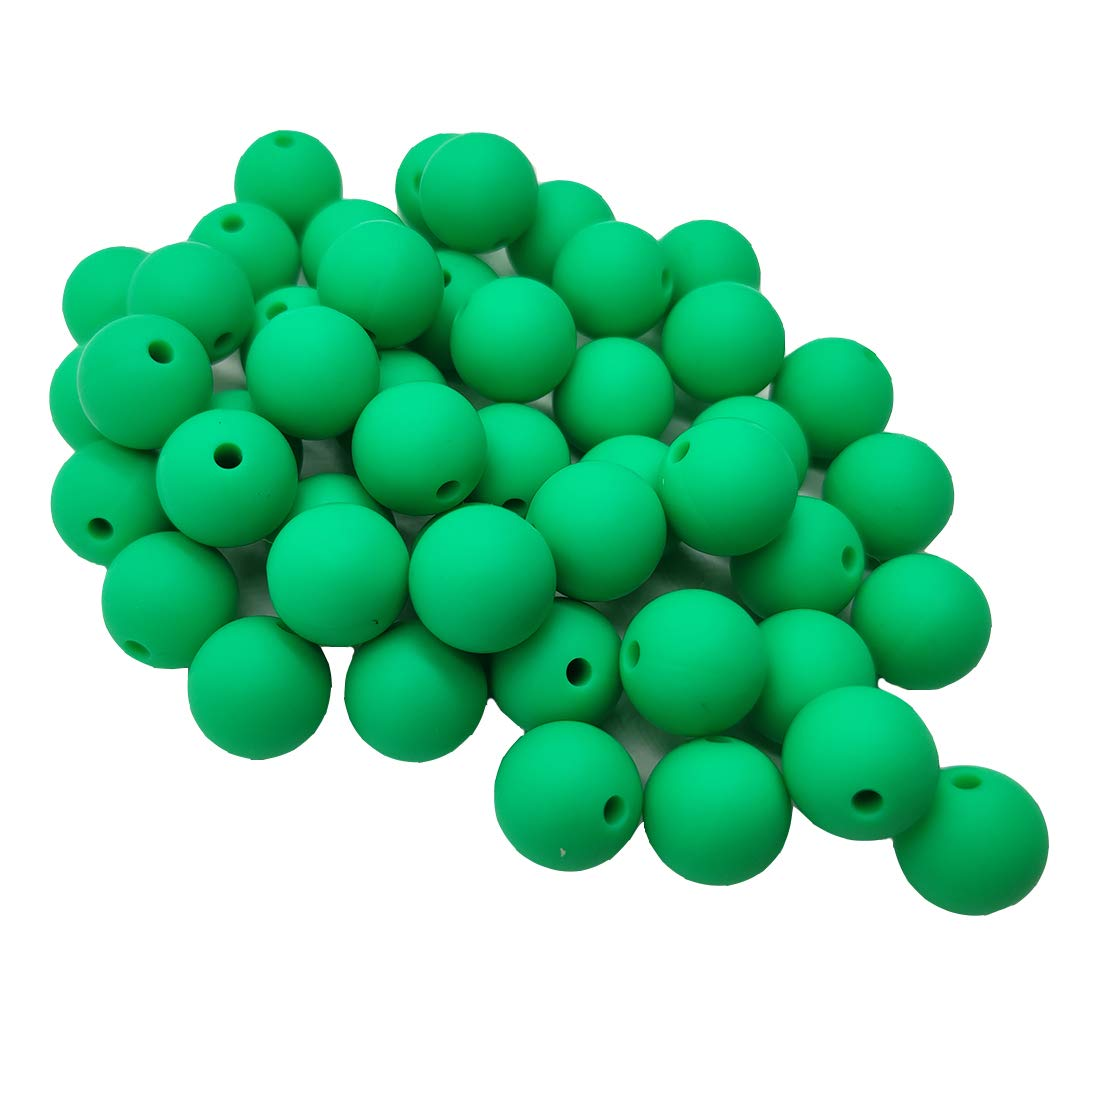 50pcs Kelly Green Color Silicone Round Beads Sensory 15mm Silicone Pearl Bead Bulk Mom Necklace DIY Jewelry Making Decoration